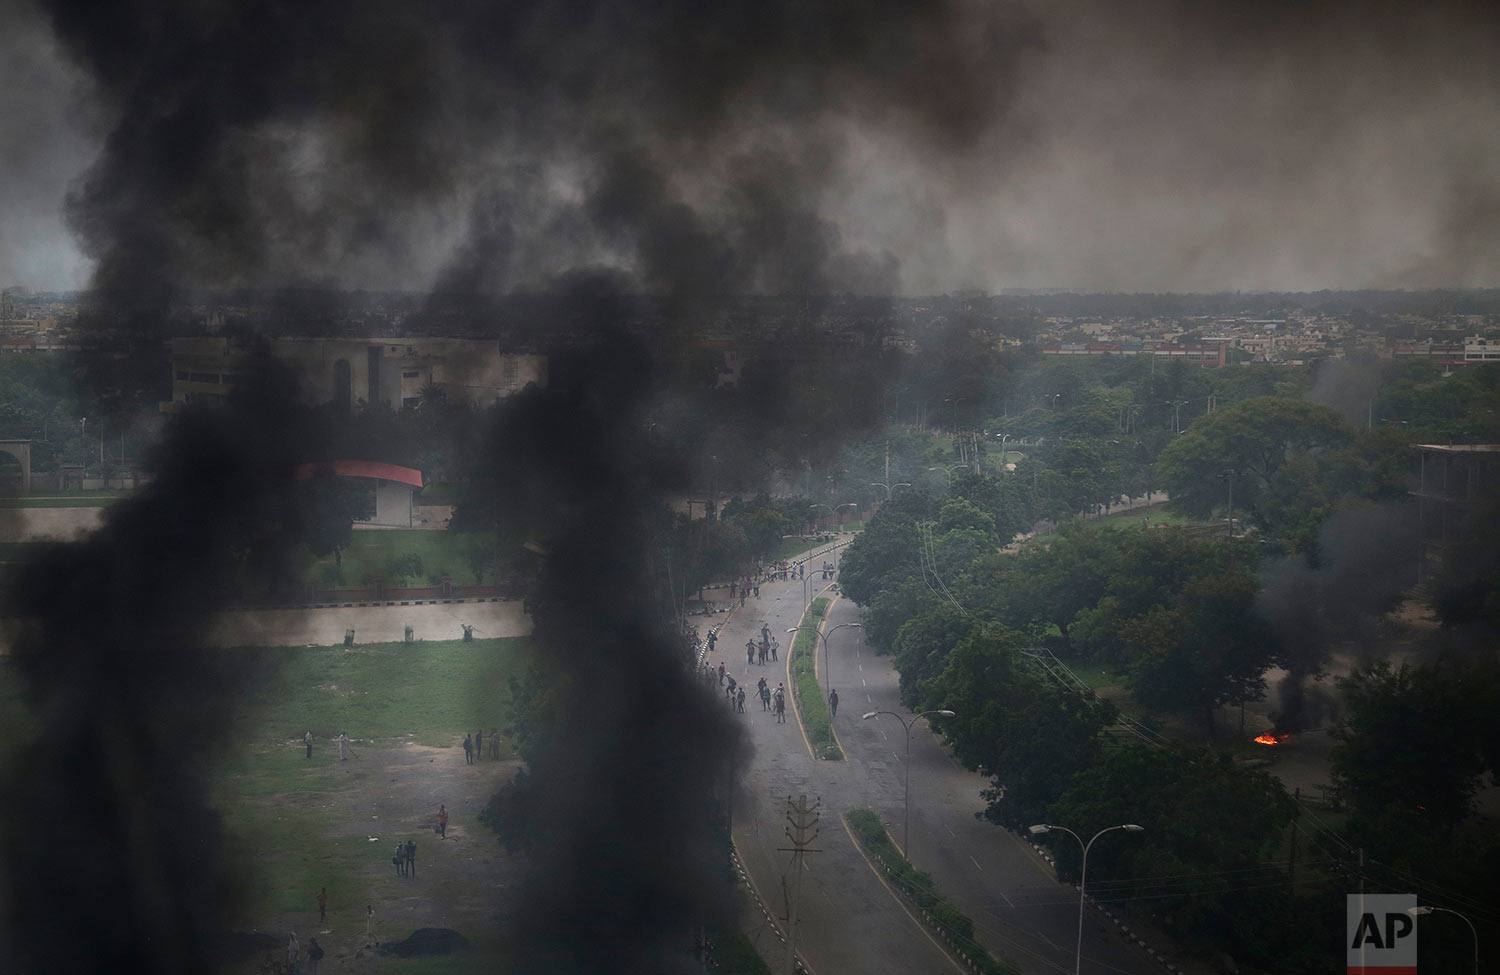 Smoke billows after supporters of the Dera Sacha Sauda sect set vehicles on fire near in Panchkula, India, Friday, Aug. 25, 2017.   (AP Photo/Altaf Qadri)